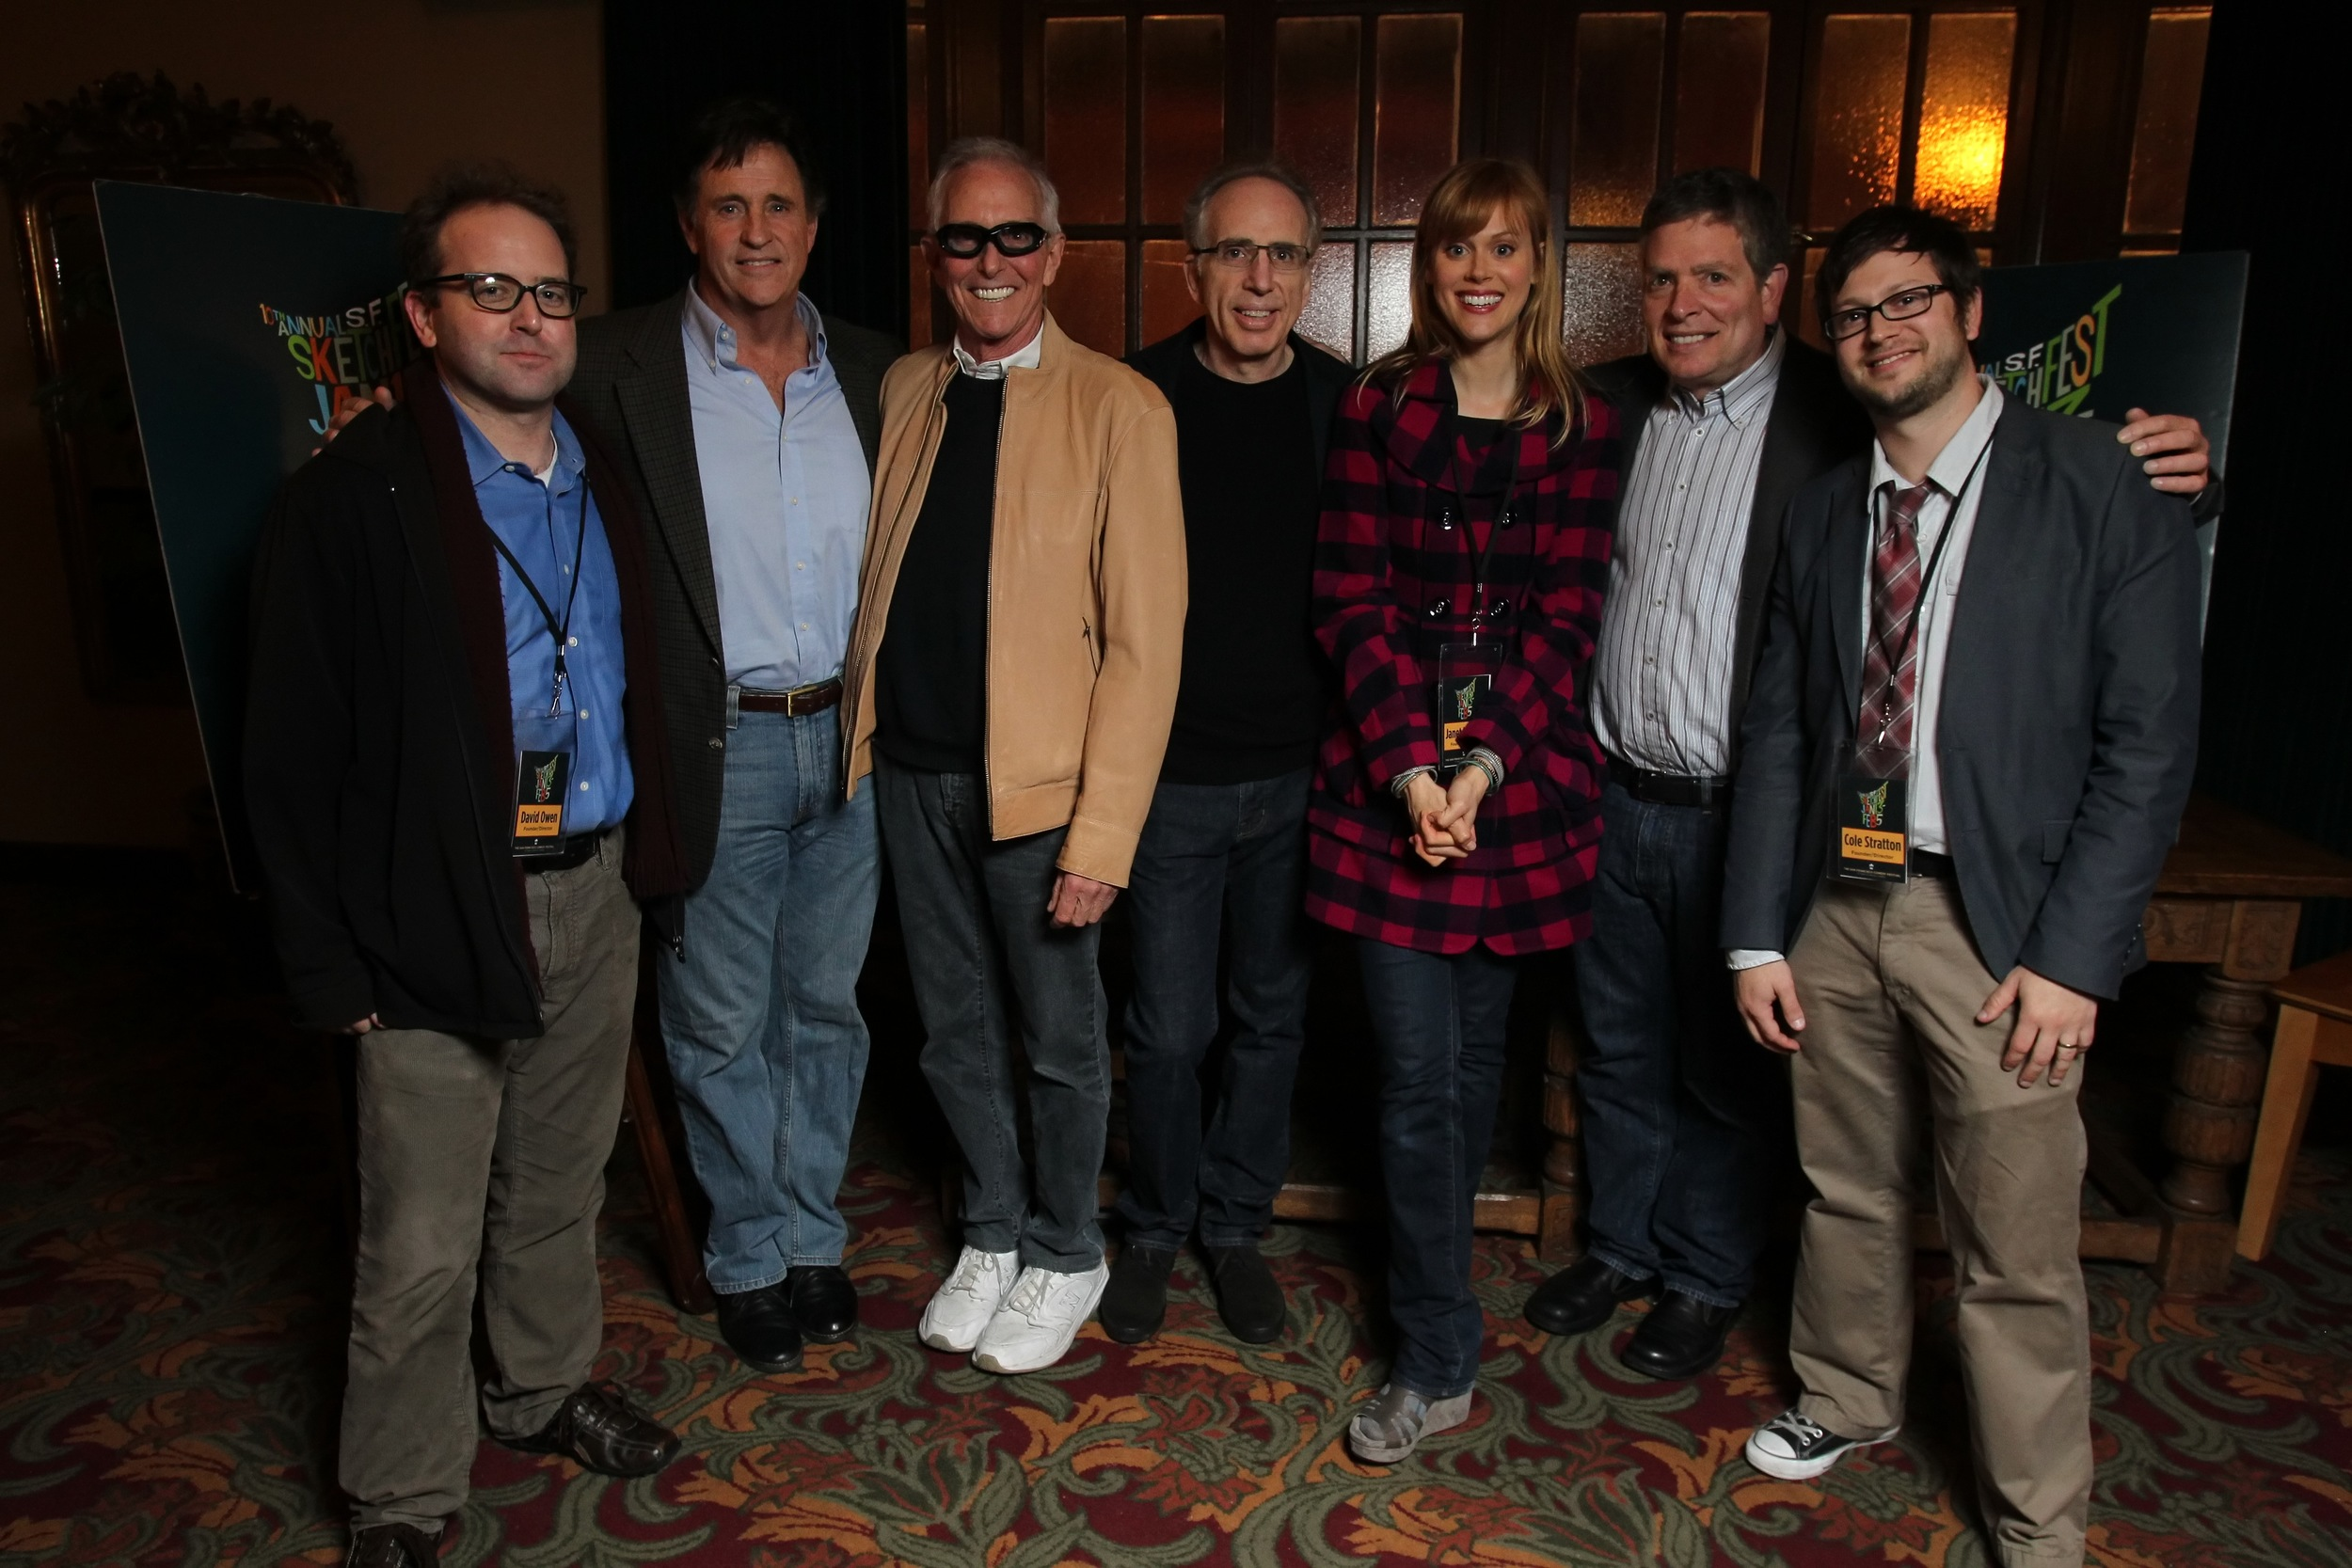 David Owen, Robert Hayes, Jim Abrahams, Jerry Zucker, Janet Varney and David Zucker. Photo by Jakub Mosur.